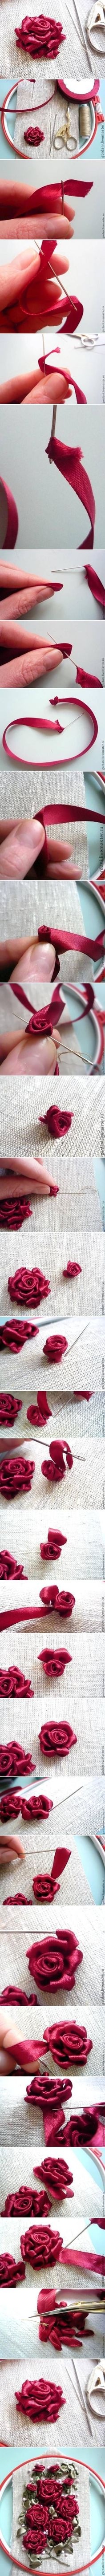 DIY Ribbon Rose Pictures, Photos, and Images for Facebook, Tumblr, Pinterest, and Twitter